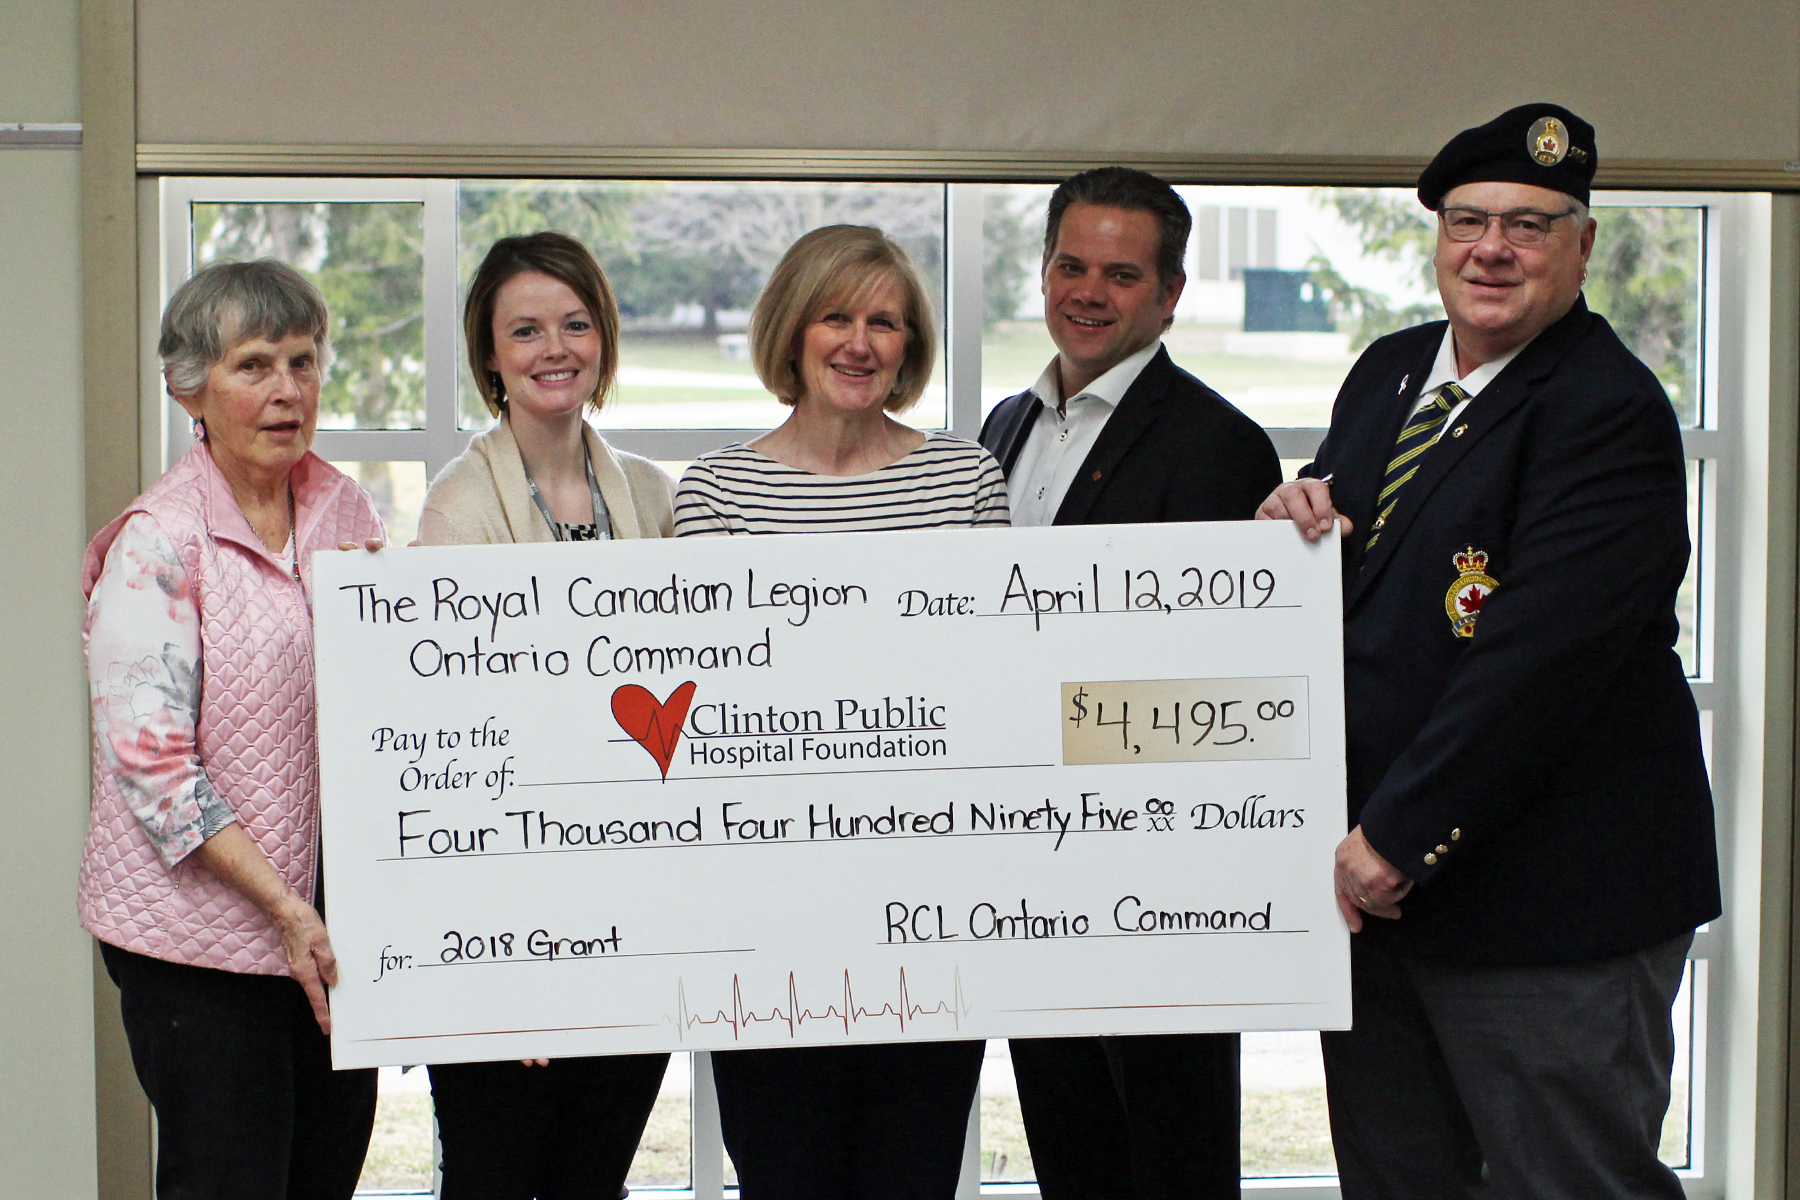 Foundation Received Legion Grant For New Equipment